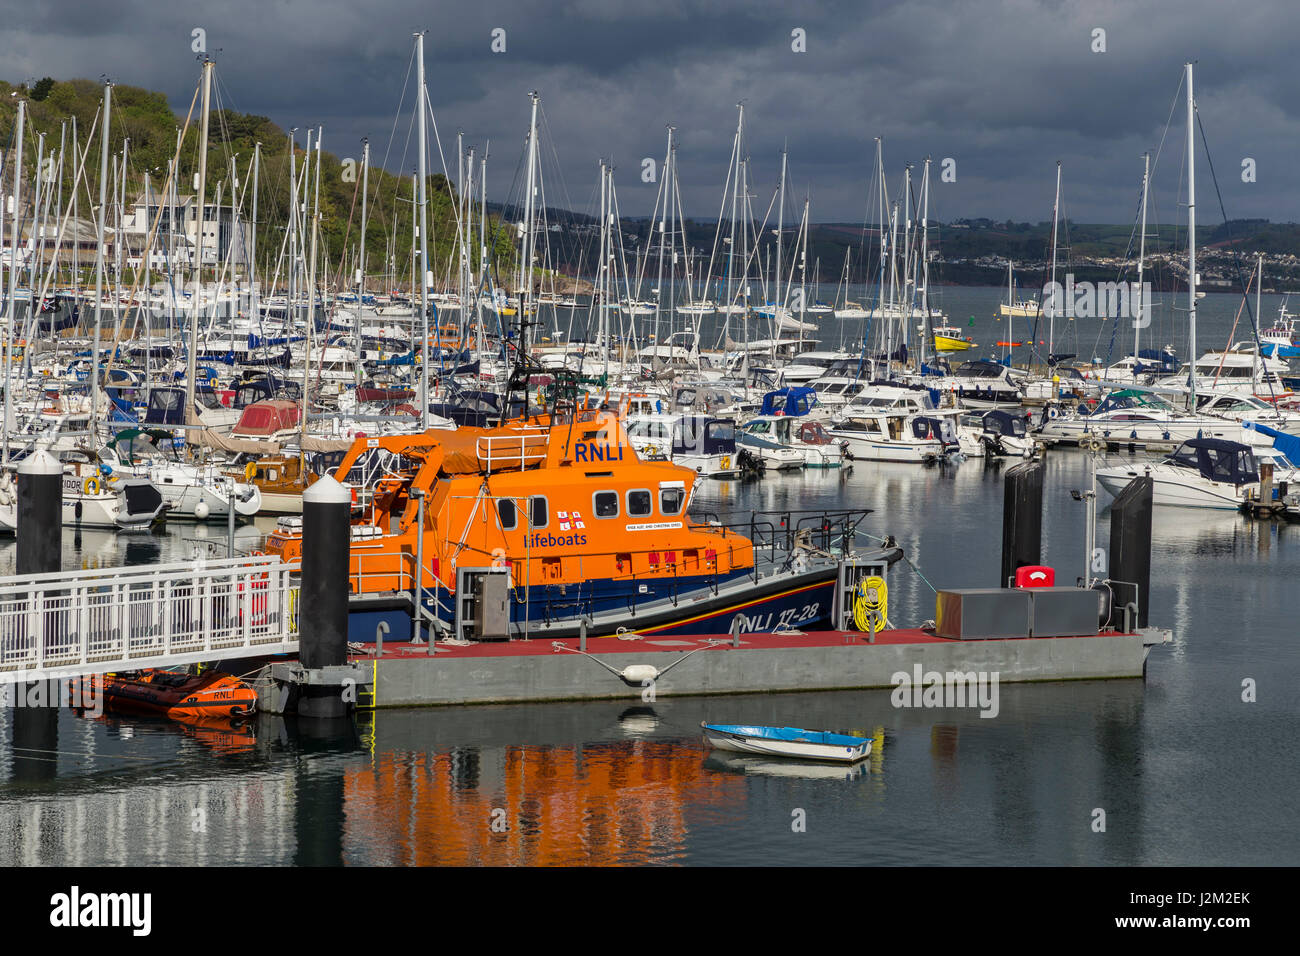 View across Brixham Harbour and Marina, with the RNLI Torbay lifeboat moored, in South Devon, UK - Stock Image